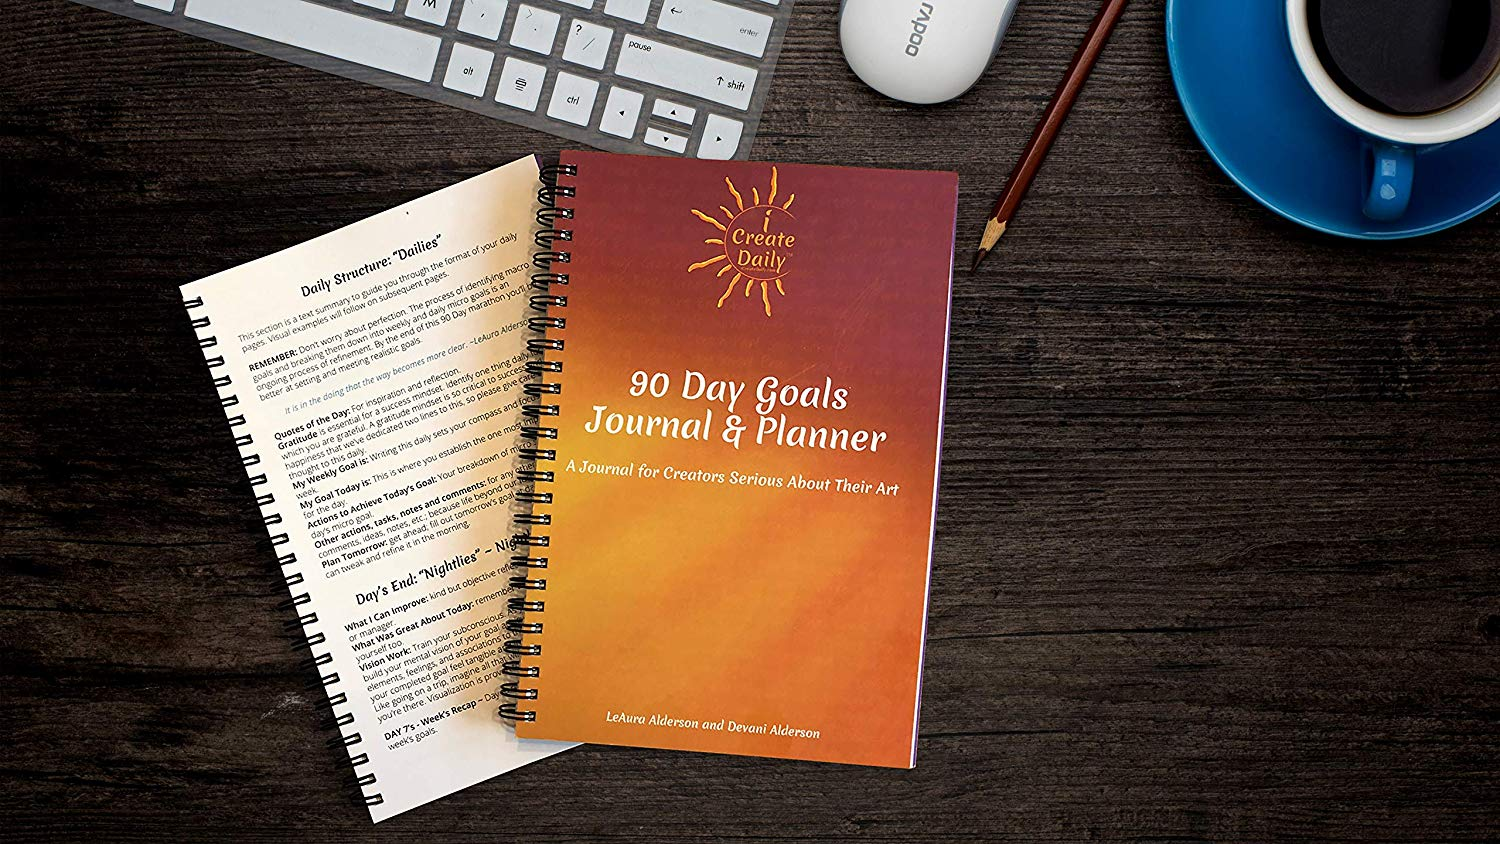 Your goals… done! Your dreams… accomplished! #GoalJournal #GoalPlanner #BestSelf #90DayJournals #90DayGoals #AchieveYourGoals